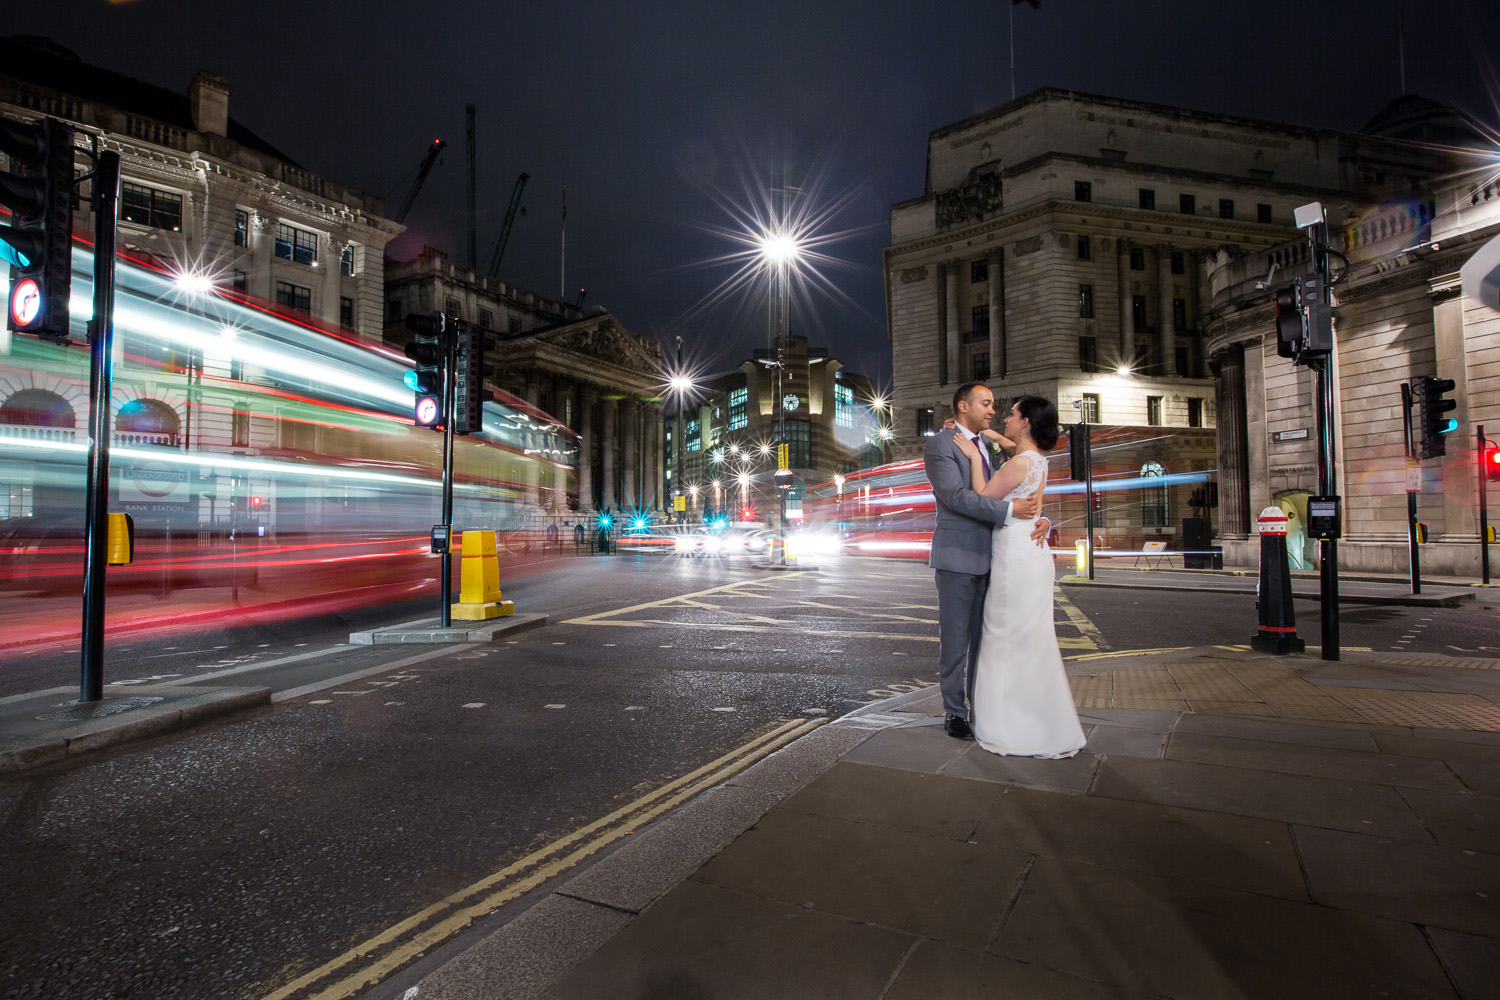 bride-groom-wedding-city-london-stunning-photography-bank